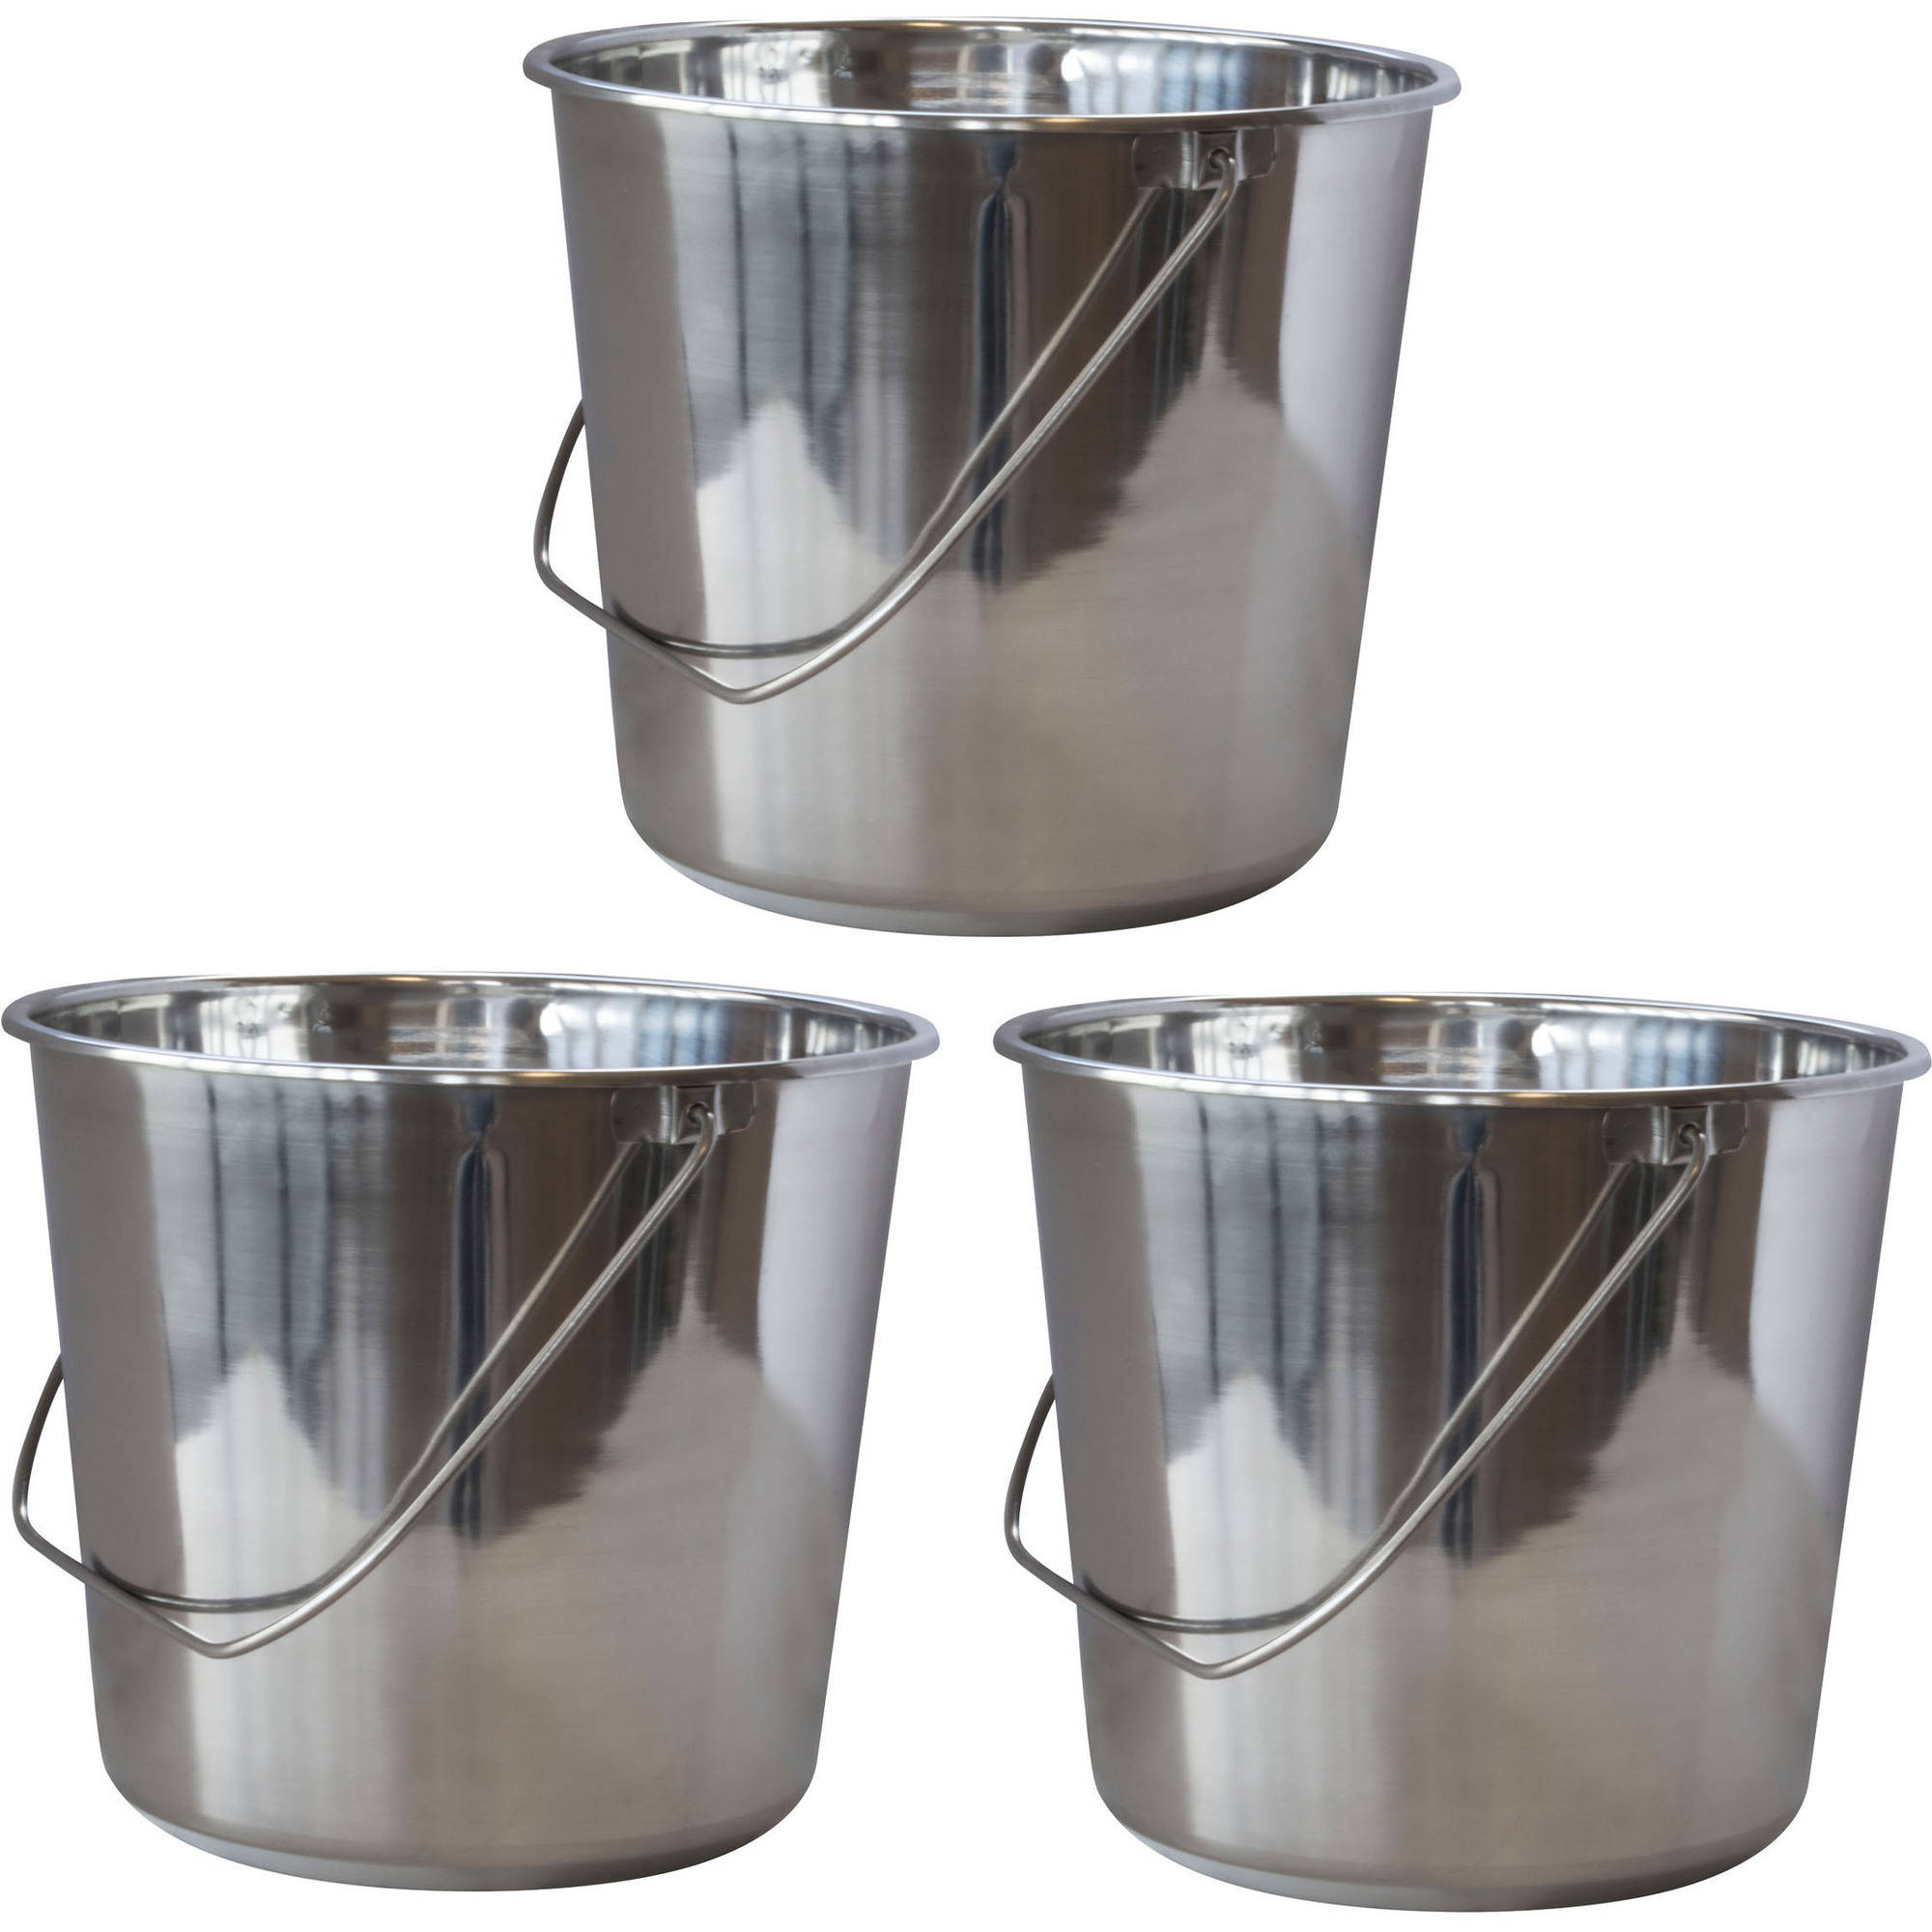 AmeriHome Large Stainless Steel Bucket Set, 3-Piece